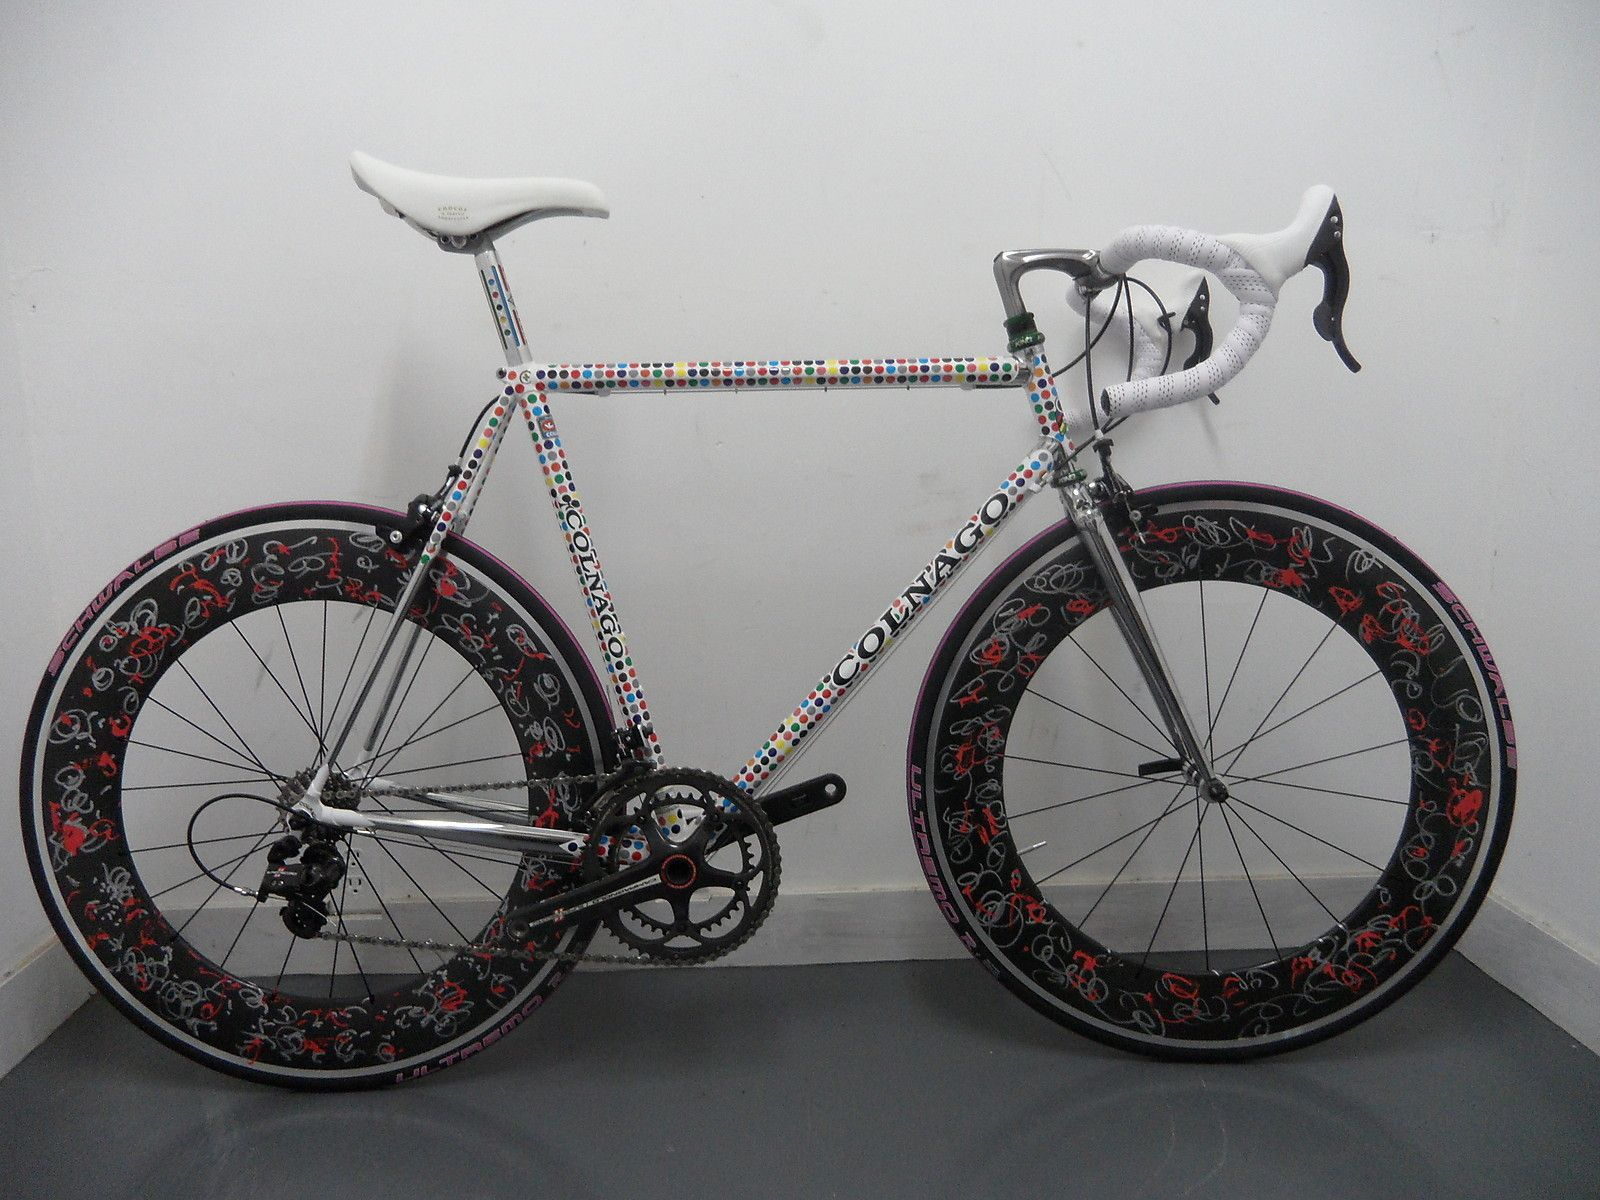 Futura 2000 Colnago Prototype Road Bike 57cm with Original Artwork Wheel Set | eBay